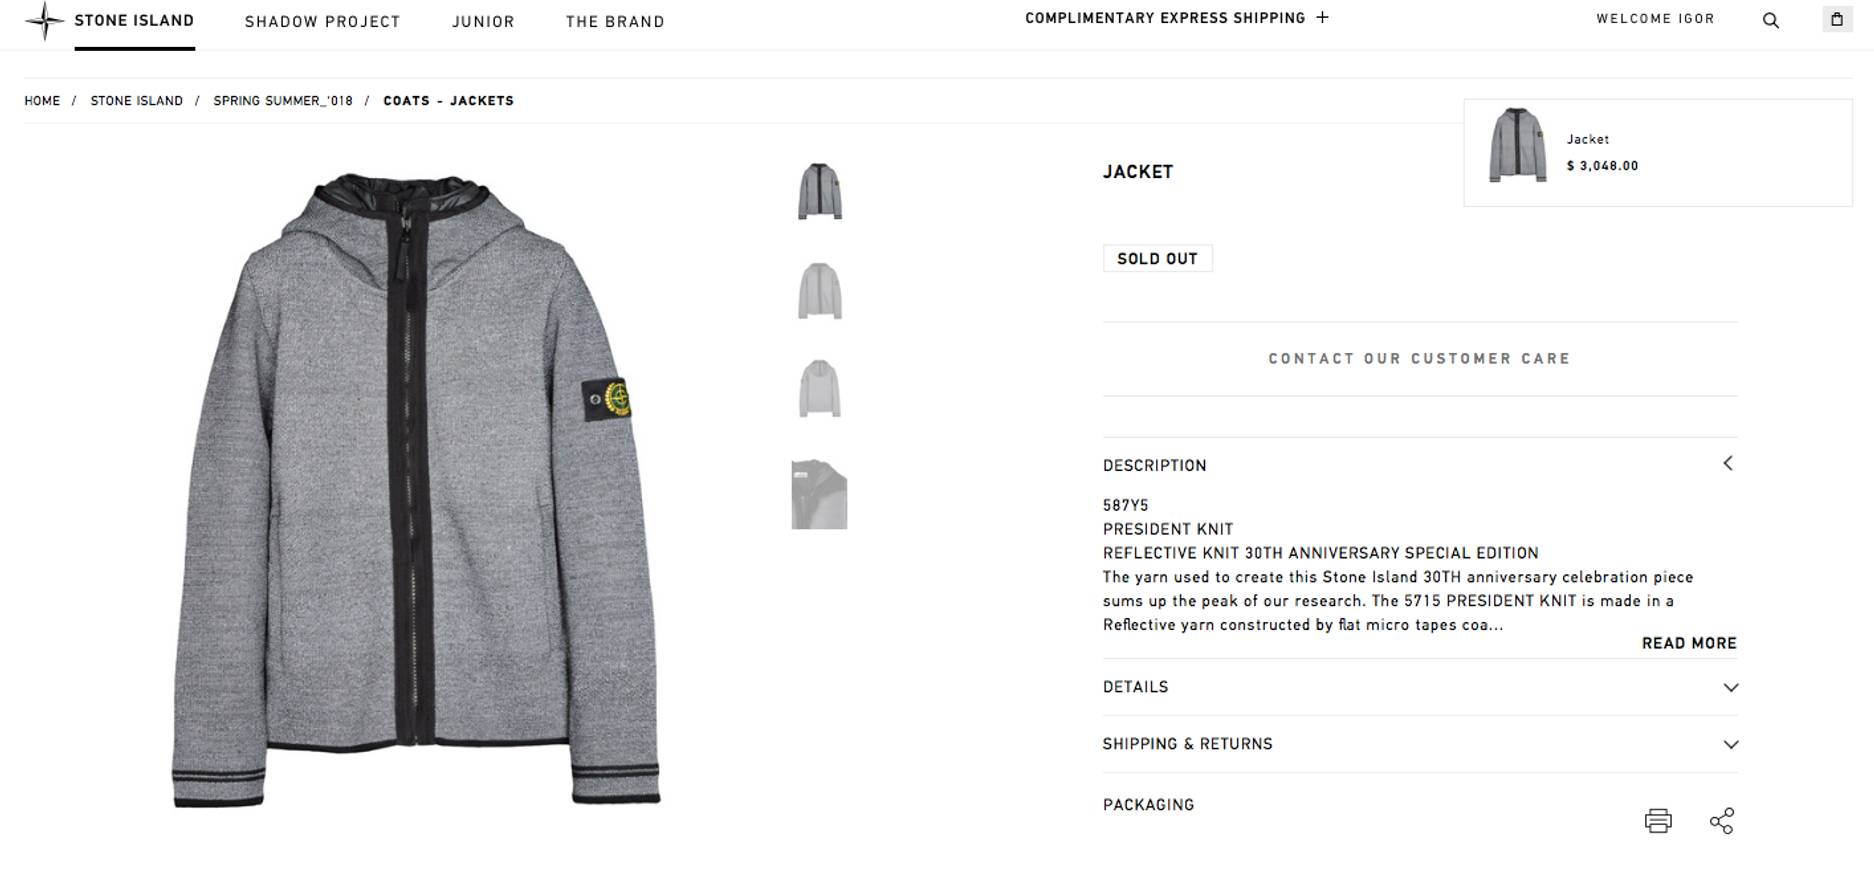 stone island president knit reflective knit 30th anniversary special